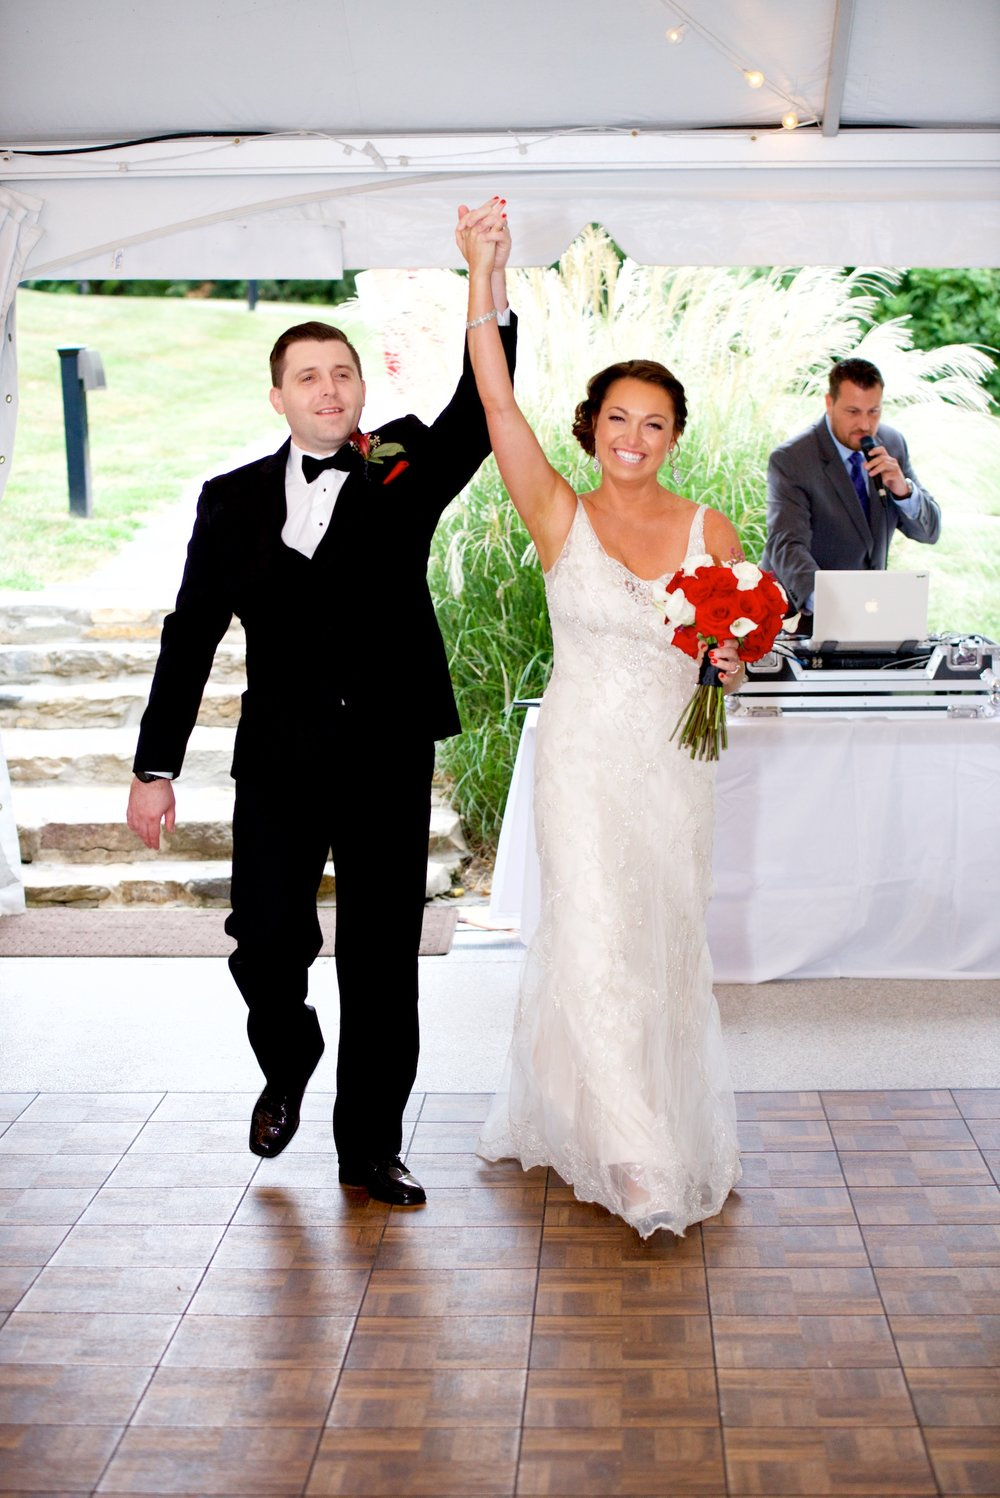 bridal-introductions-wedding-dance-photos.jpg